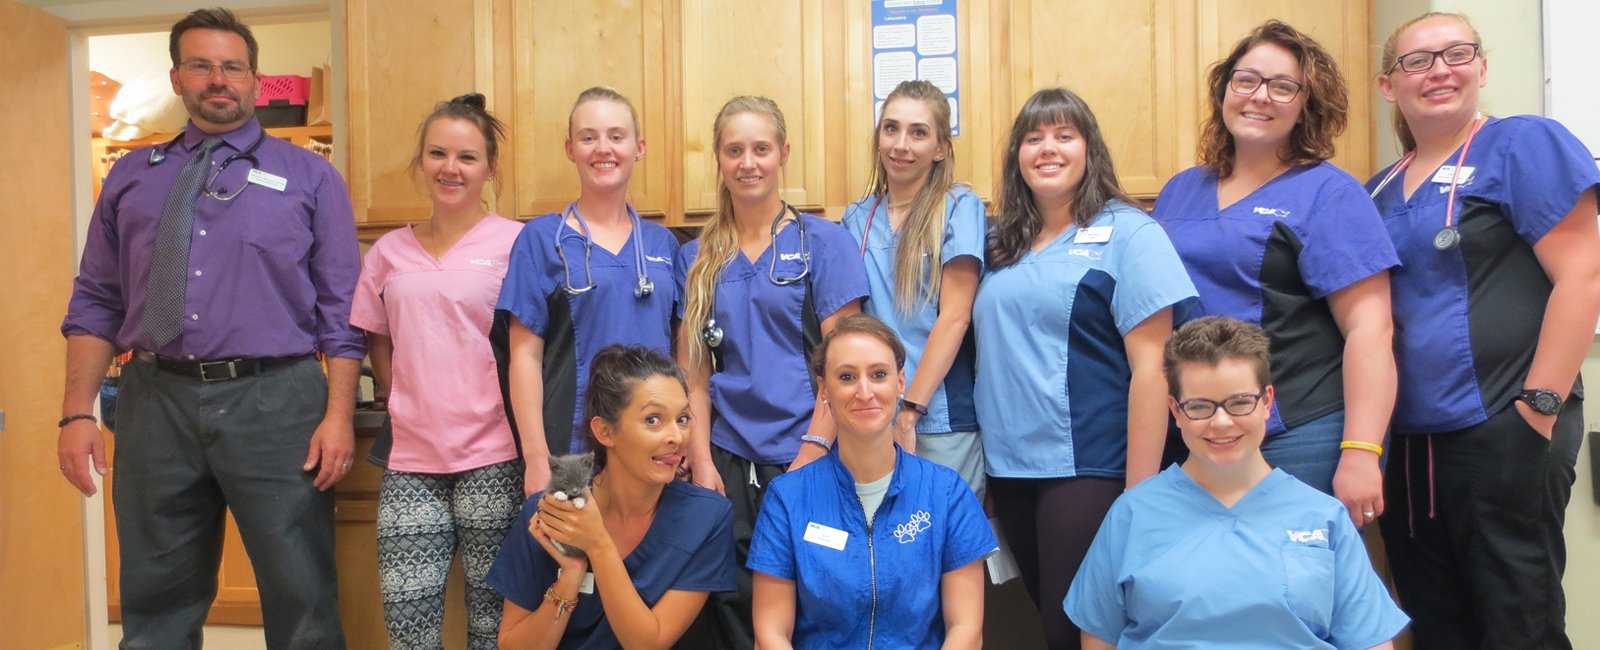 Team Picture of VCA Oquirrh Hills Animal Hospital